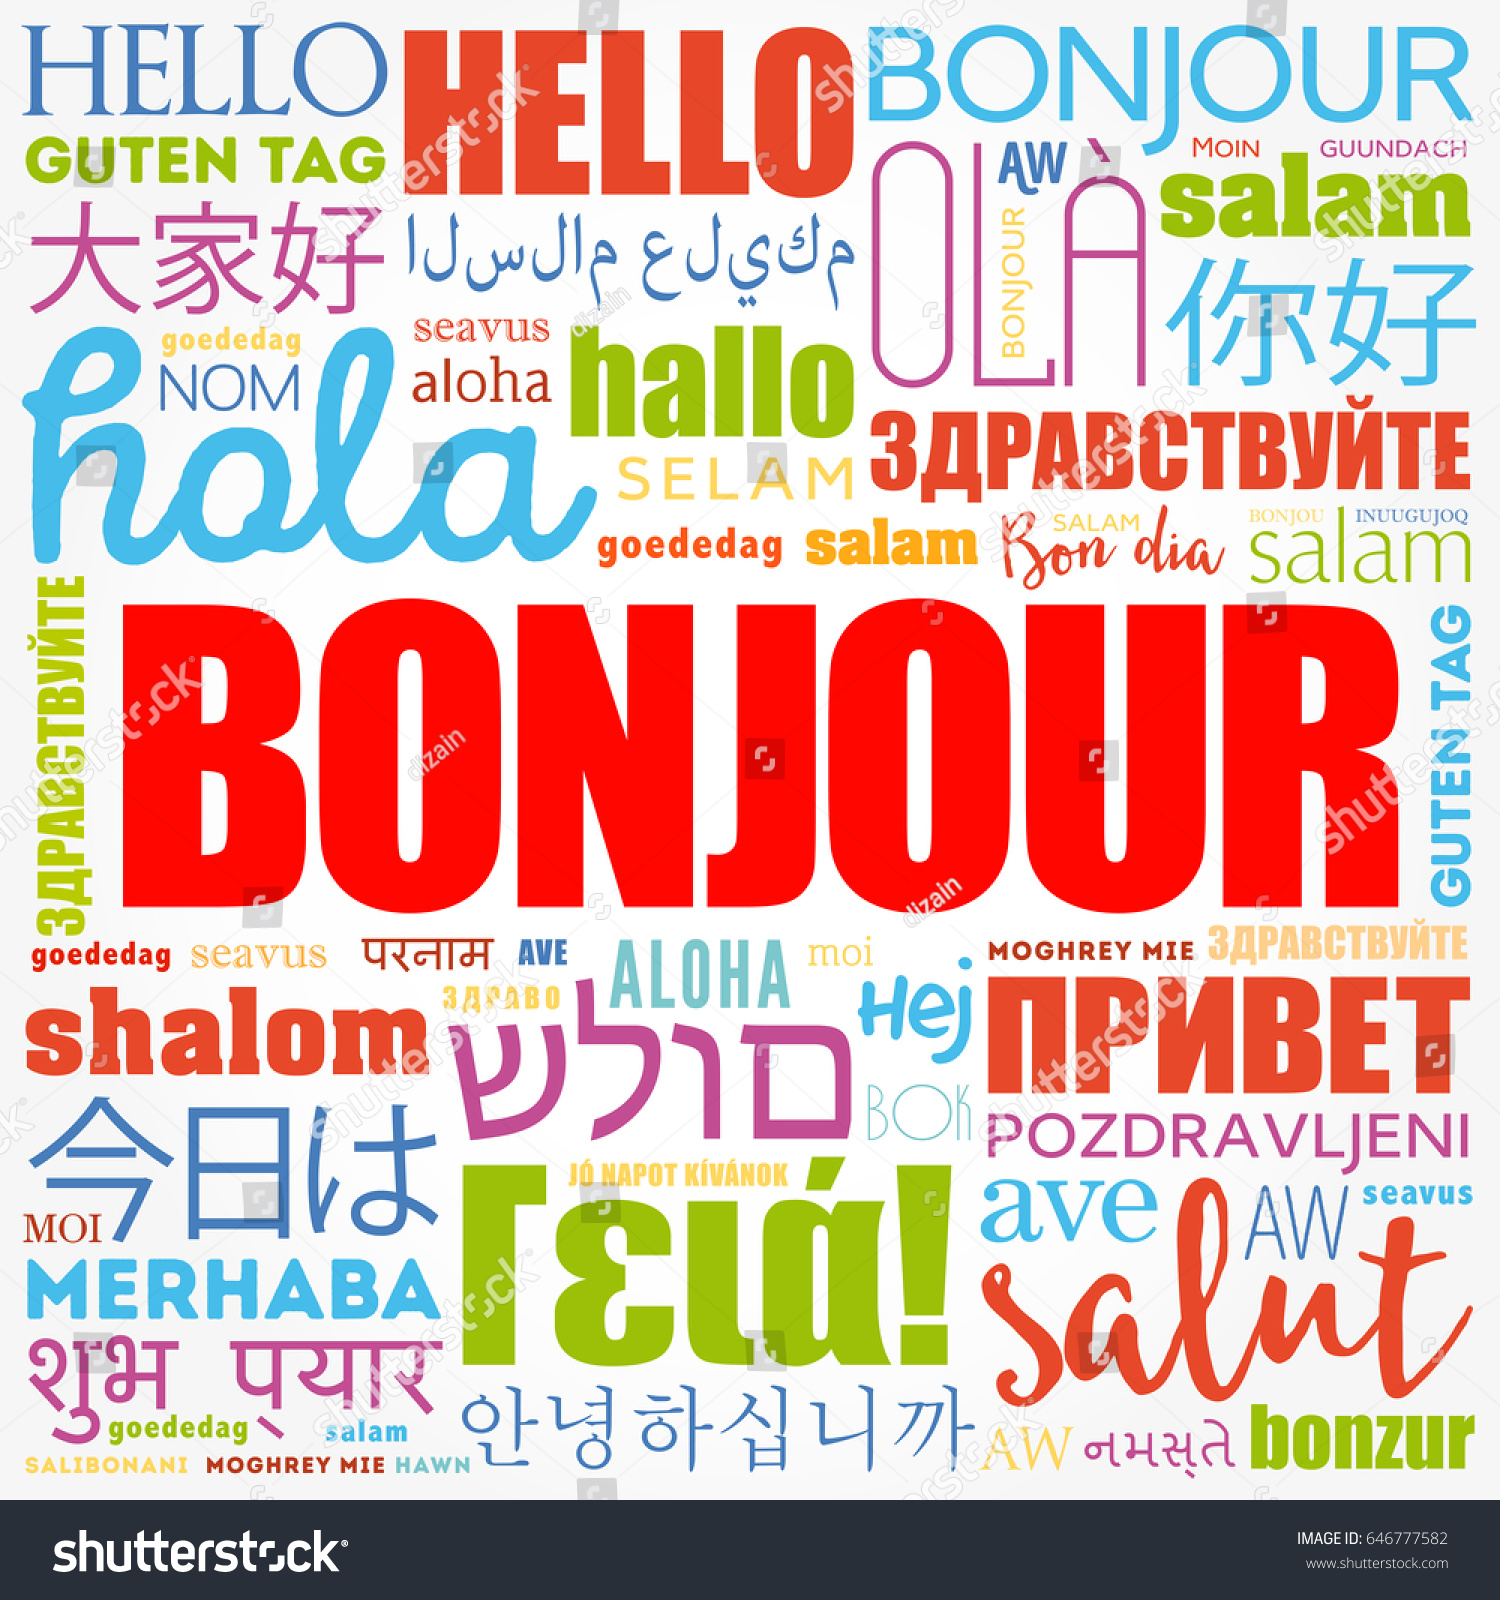 Bonjour hello greeting french word cloud stock vector 646777582 bonjour hello greeting in french word cloud in different languages of the world kristyandbryce Image collections